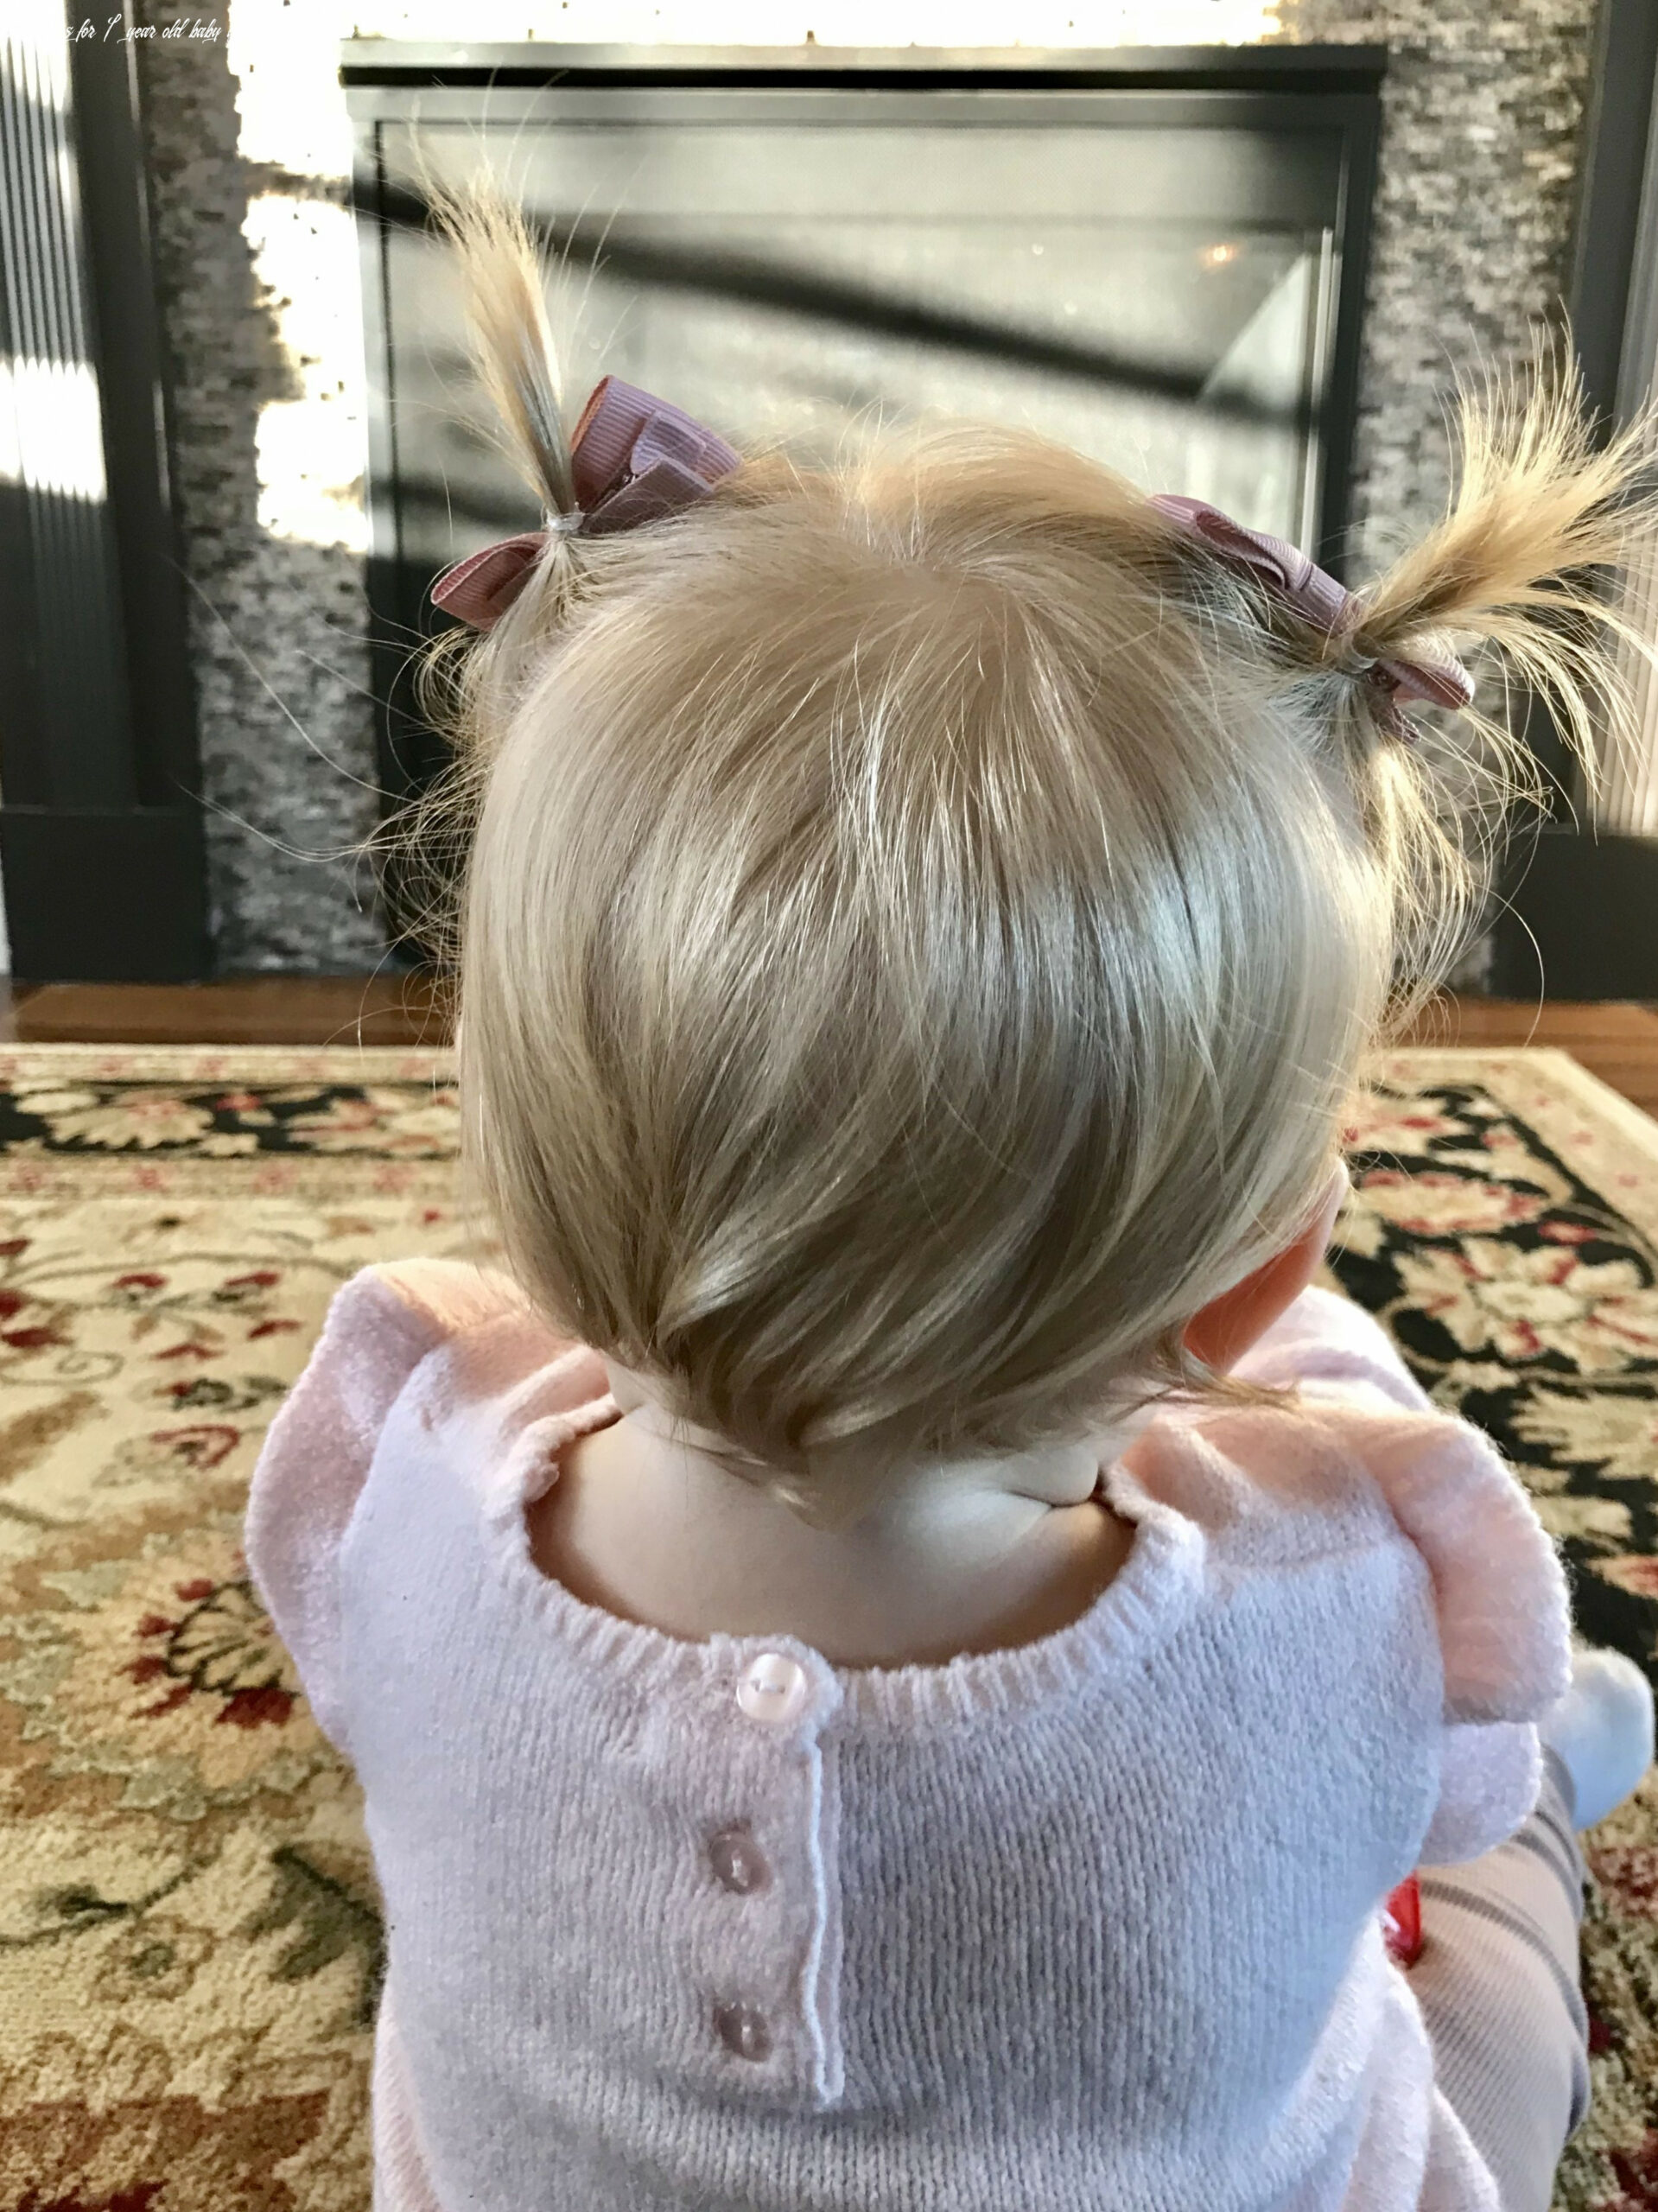 Baby girl hairstyle blonde pigtails short 12 year old | baby girl